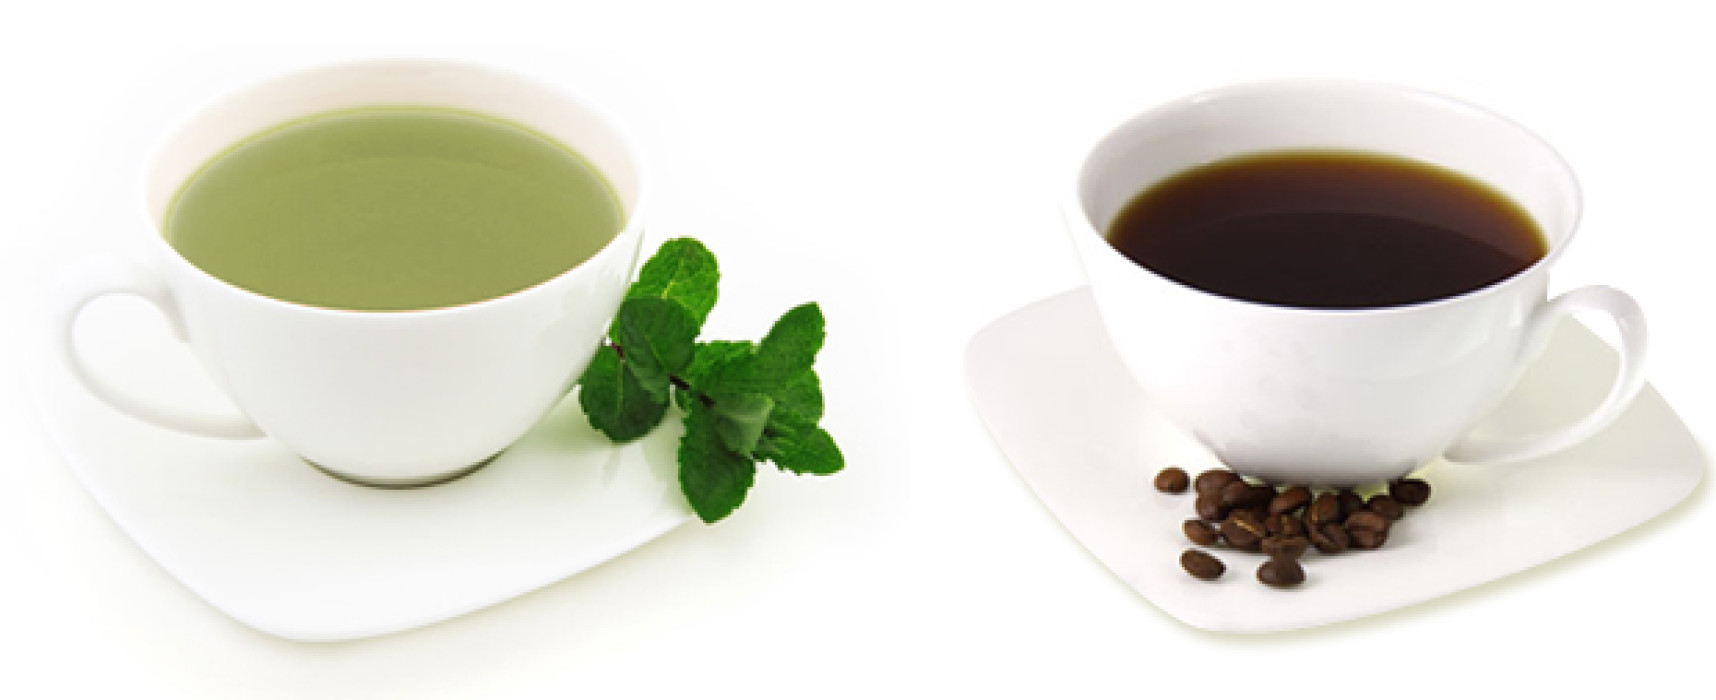 Coffee or tea which is better?